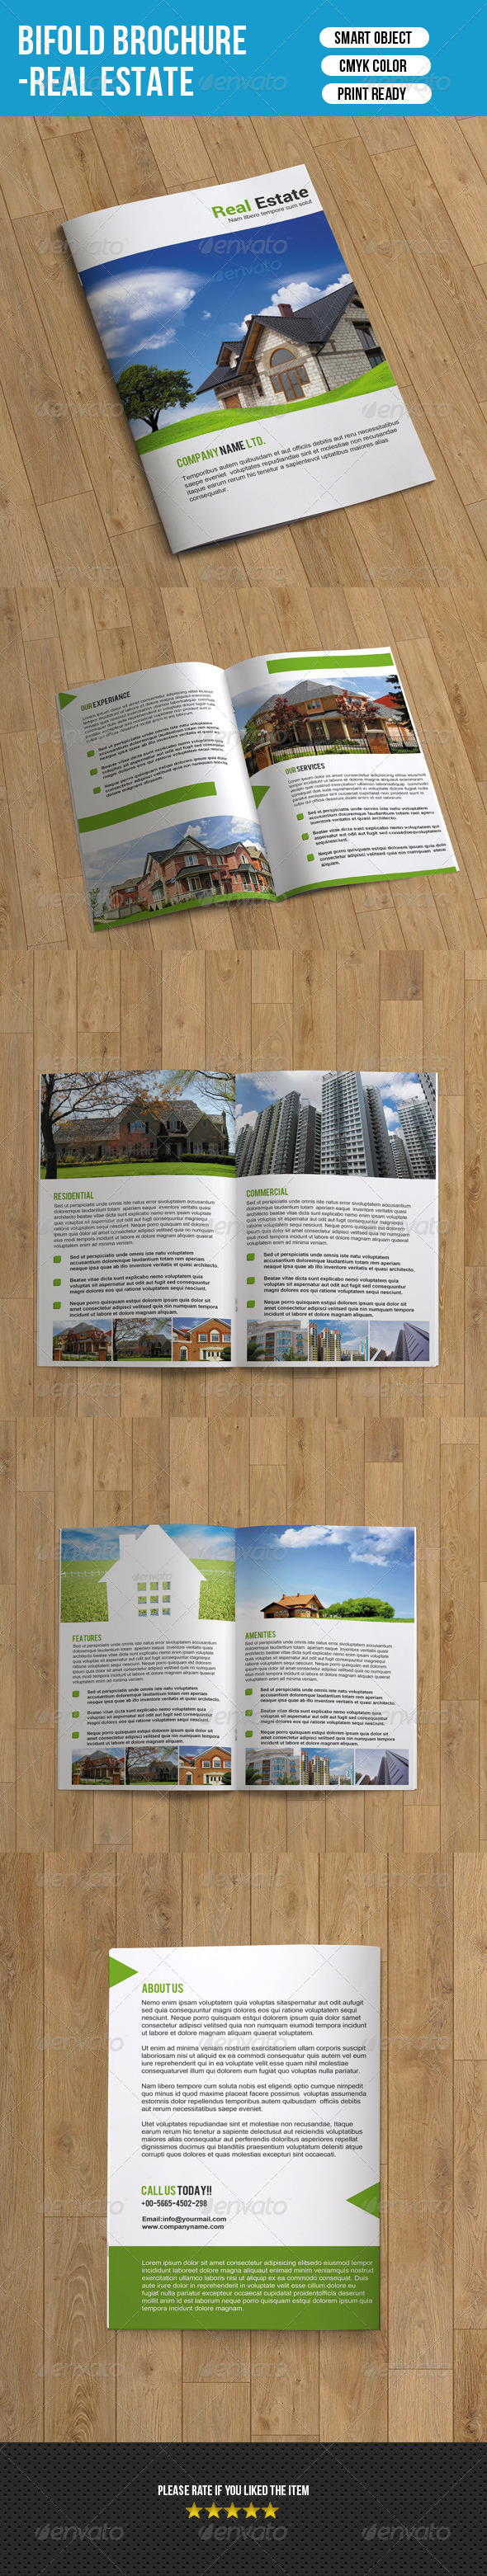 GraphicRiver Real Estate Brochure-8 Pages 7351378